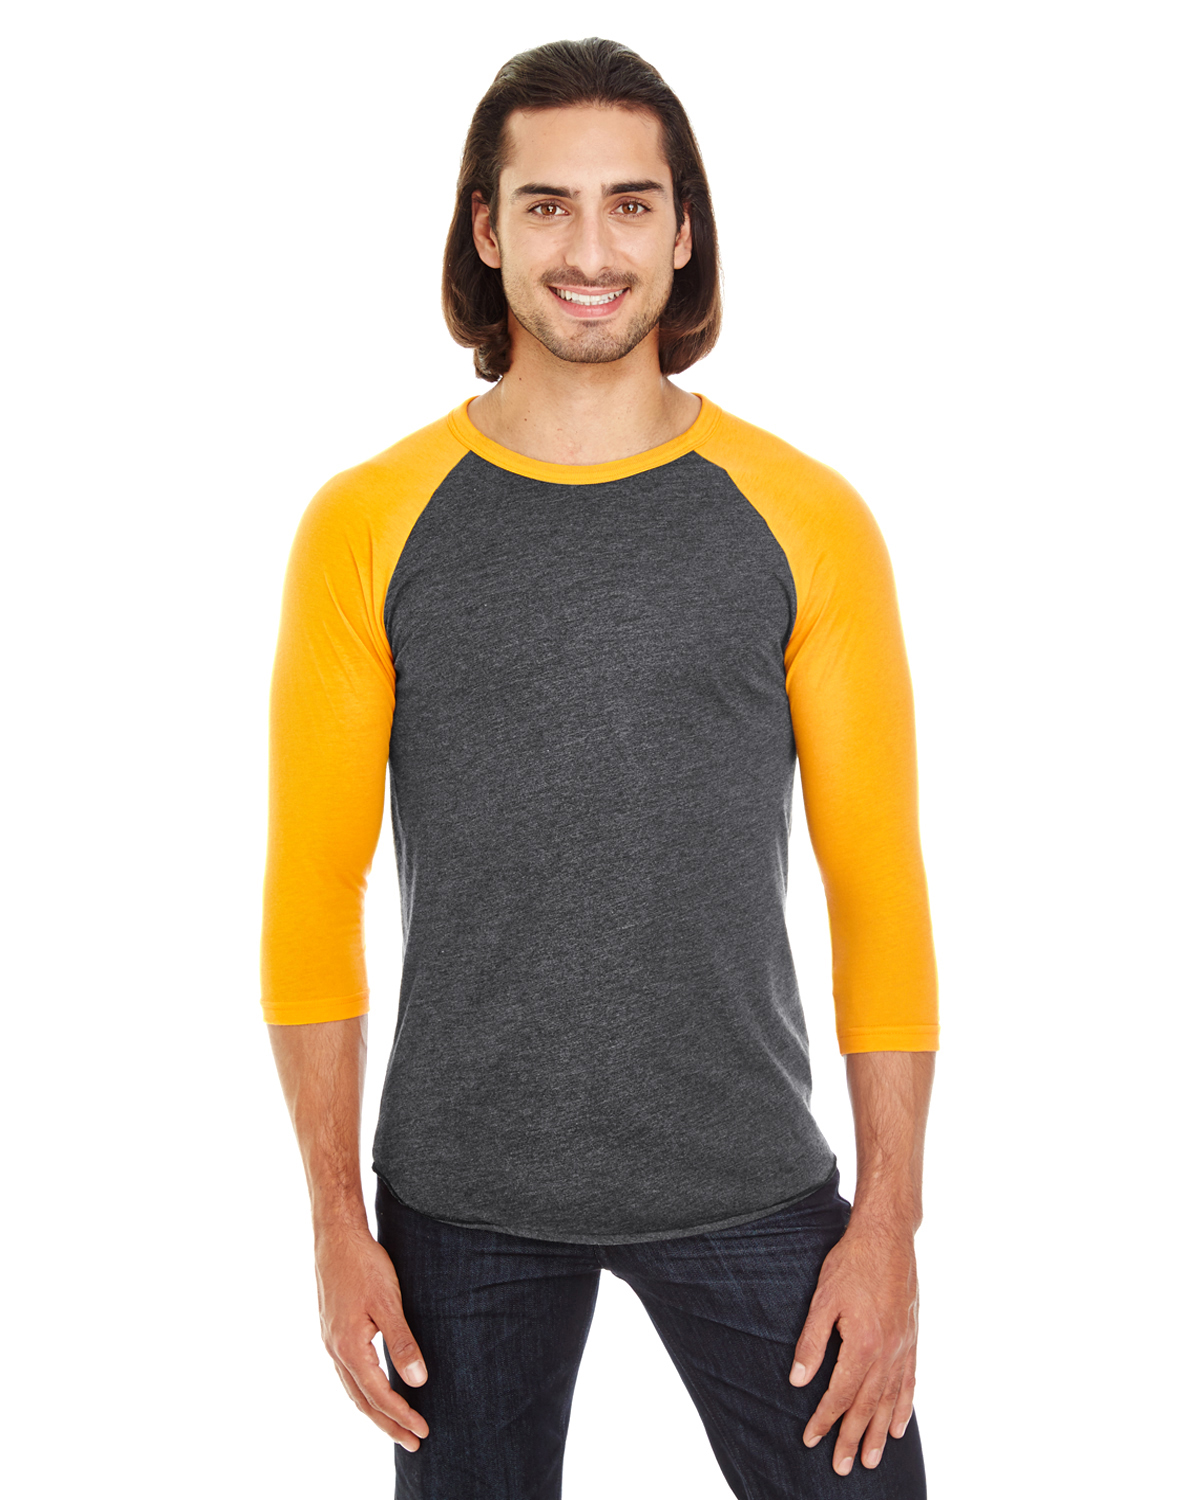 Harga Jual Harry Potter Gleis 9 3 4 T Shirt Rot Fan Merch Update Lee Cooper Lc 41g A Jam Tangan Pria Multicolor American Apparel Bb453 Unisex Poly Cotton Sleeve Raglan